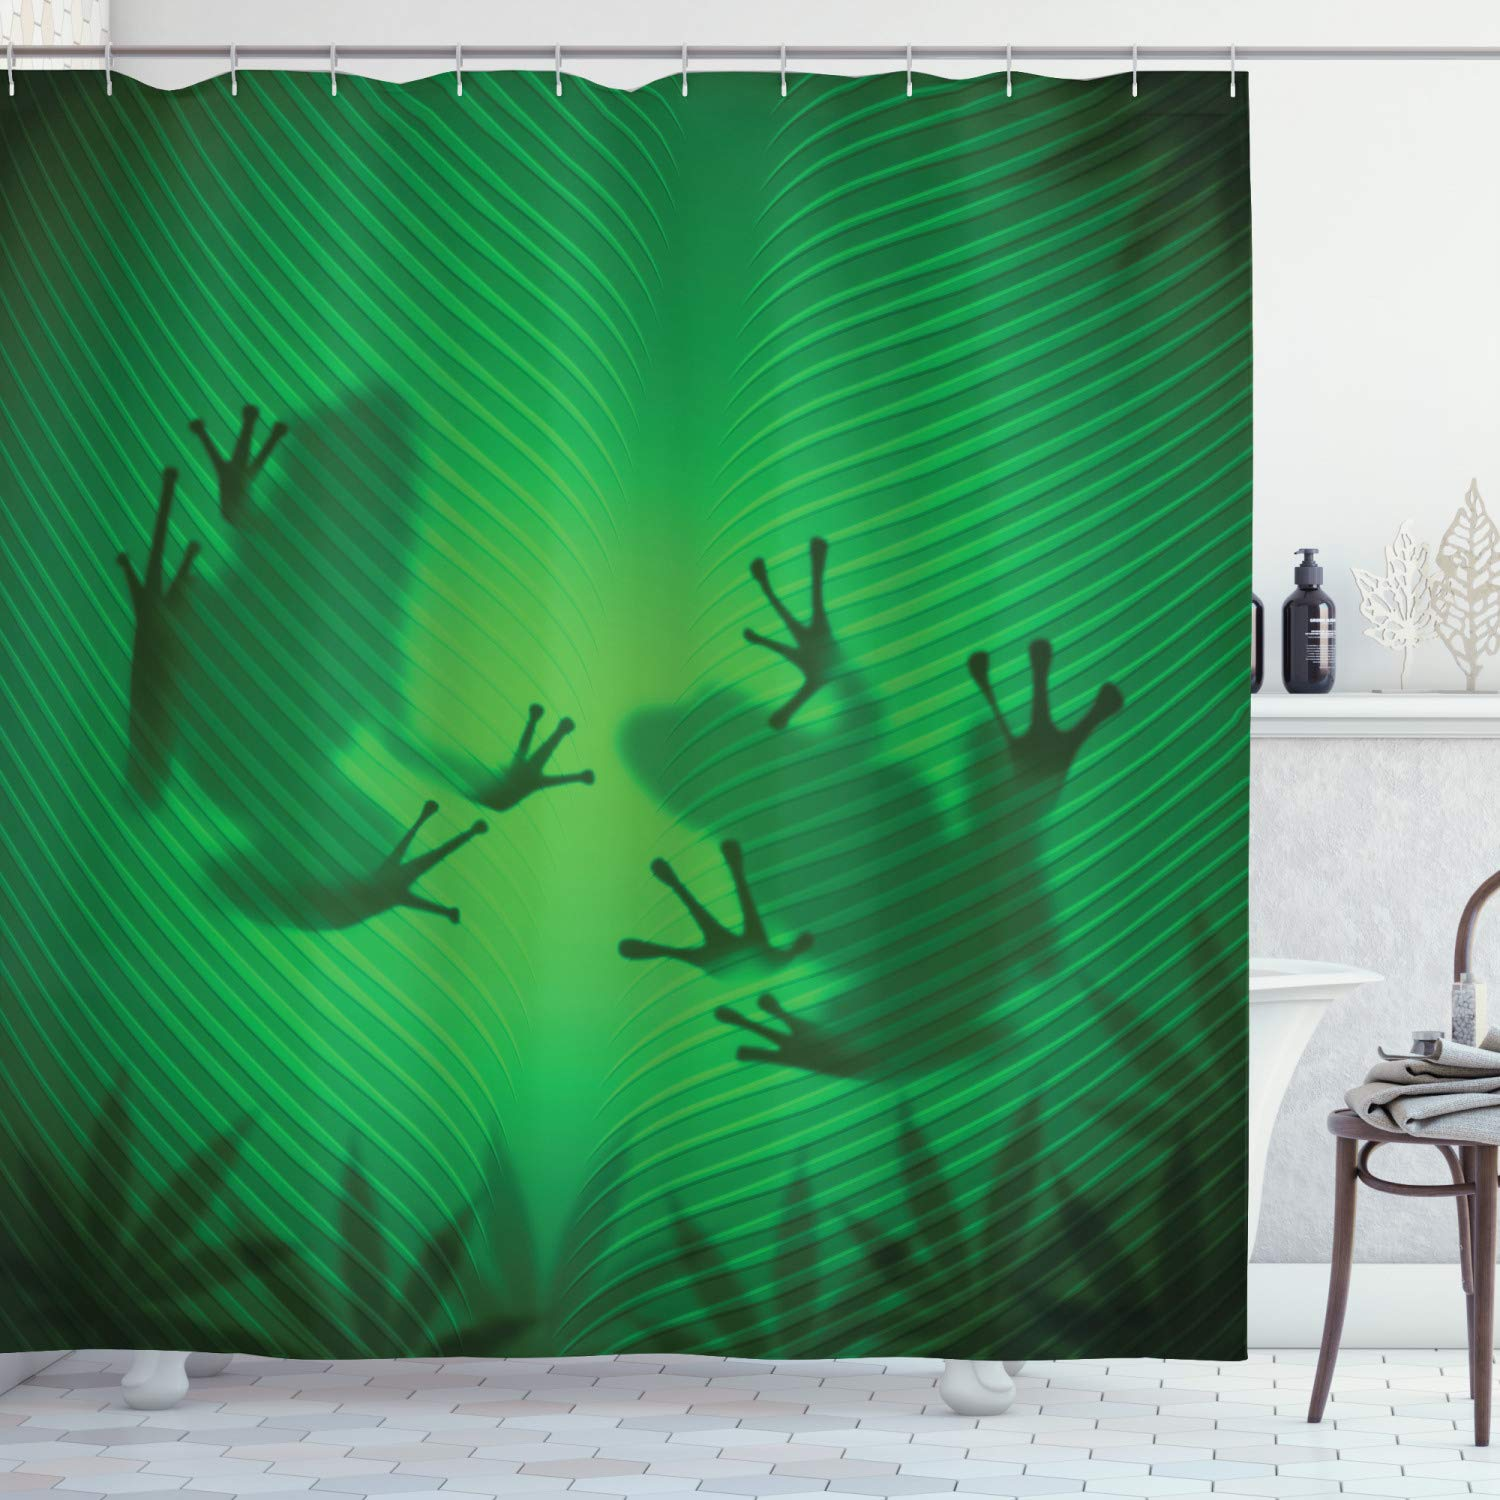 """Ambesonne Animal Shower Curtain, Frog Shadow Silhouette on The Banana Tree Leaf in Tropical Lands Jungle Games Graphic, Cloth Fabric Bathroom Decor Set with Hooks, 84"""" Long Extra, Shades of Green"""